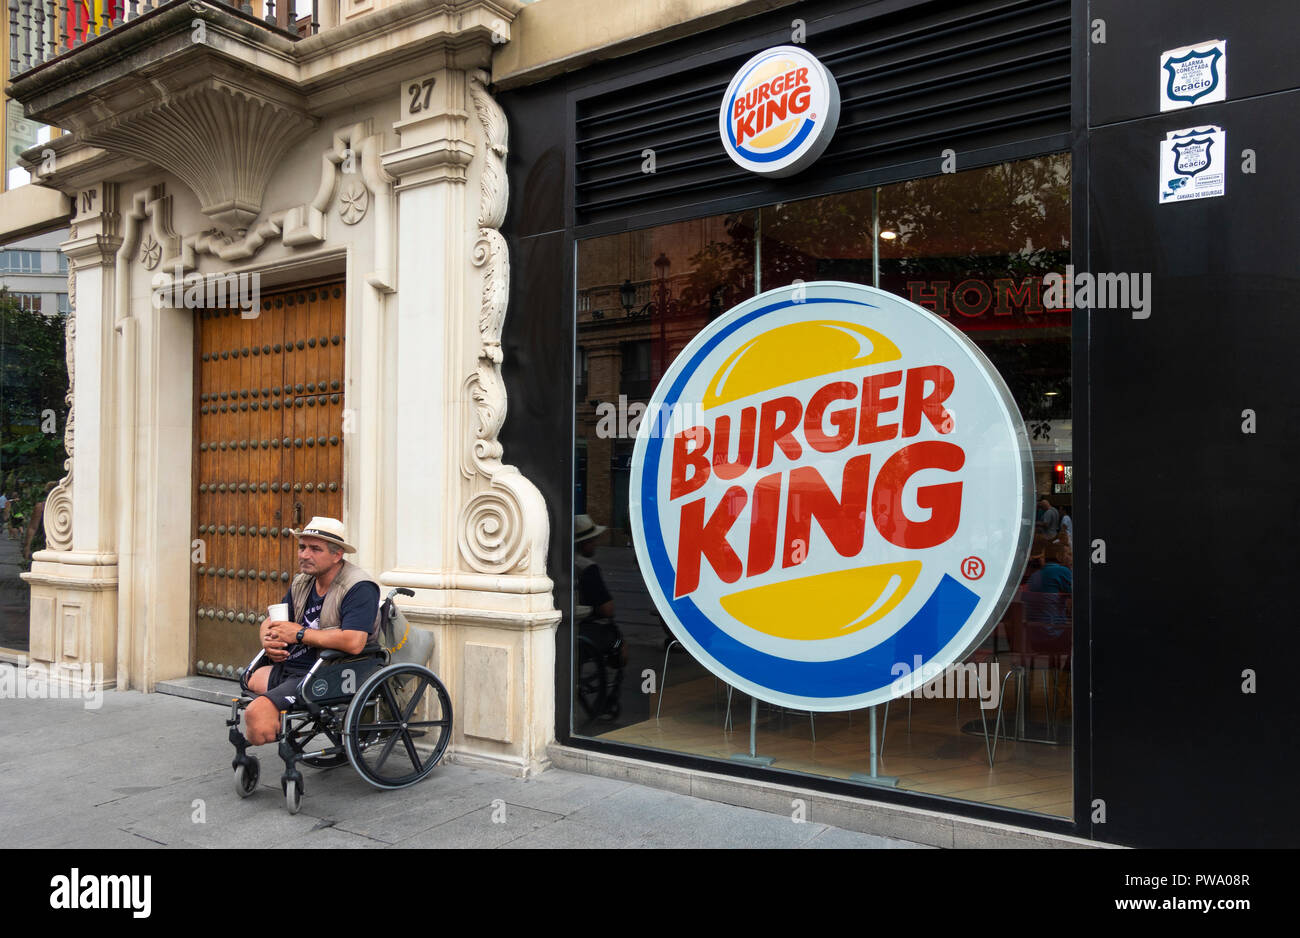 Legless man in a wheelchair solicits money in a cup outside a Burger King in Seville, Spain - Stock Image